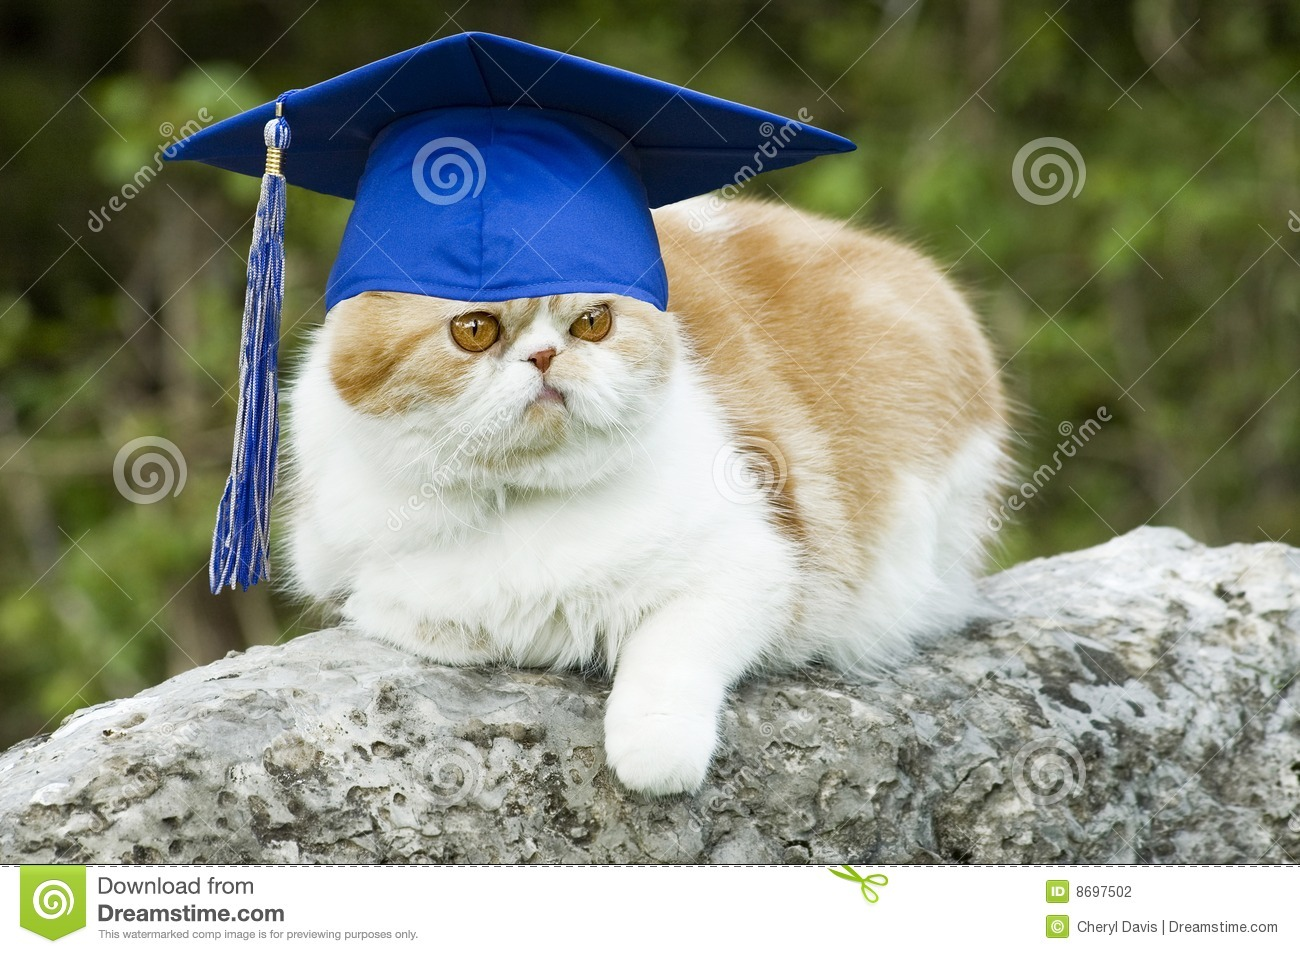 Cat with Graduation Hat